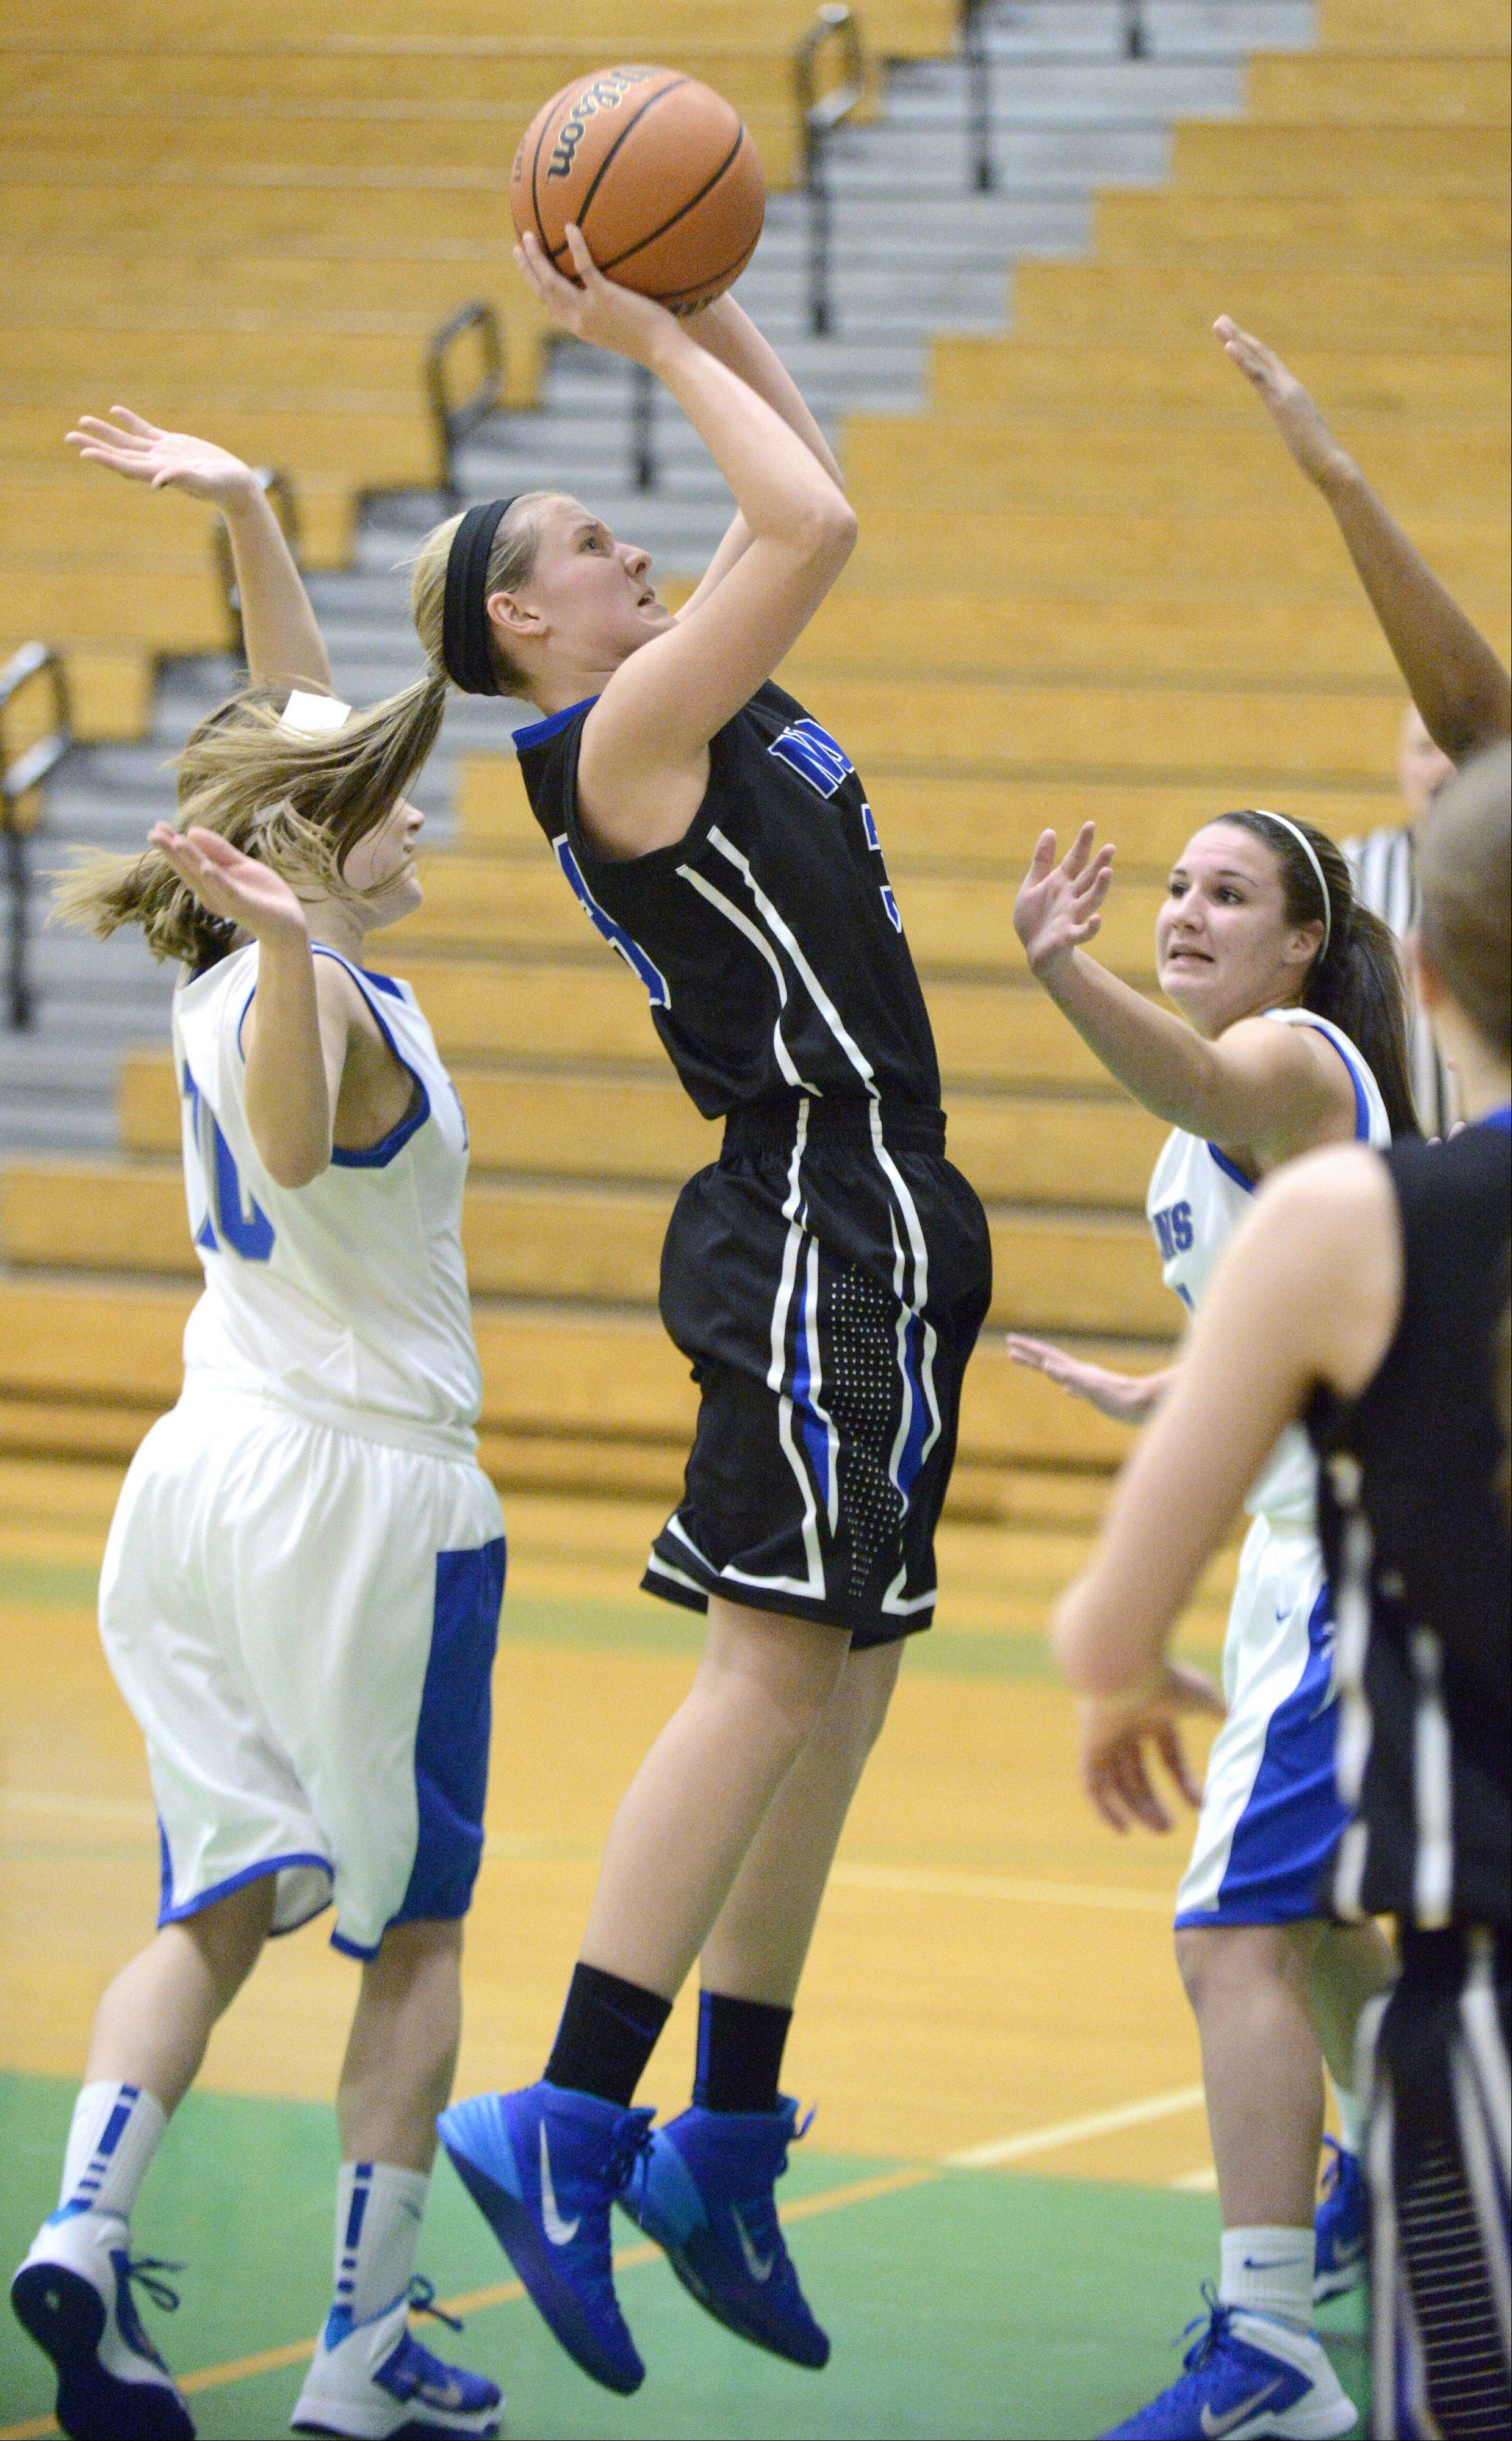 St. Charles North's Nicole Davidson shoots over a Wheaton North blockade in the first quarter on Friday, November 22.